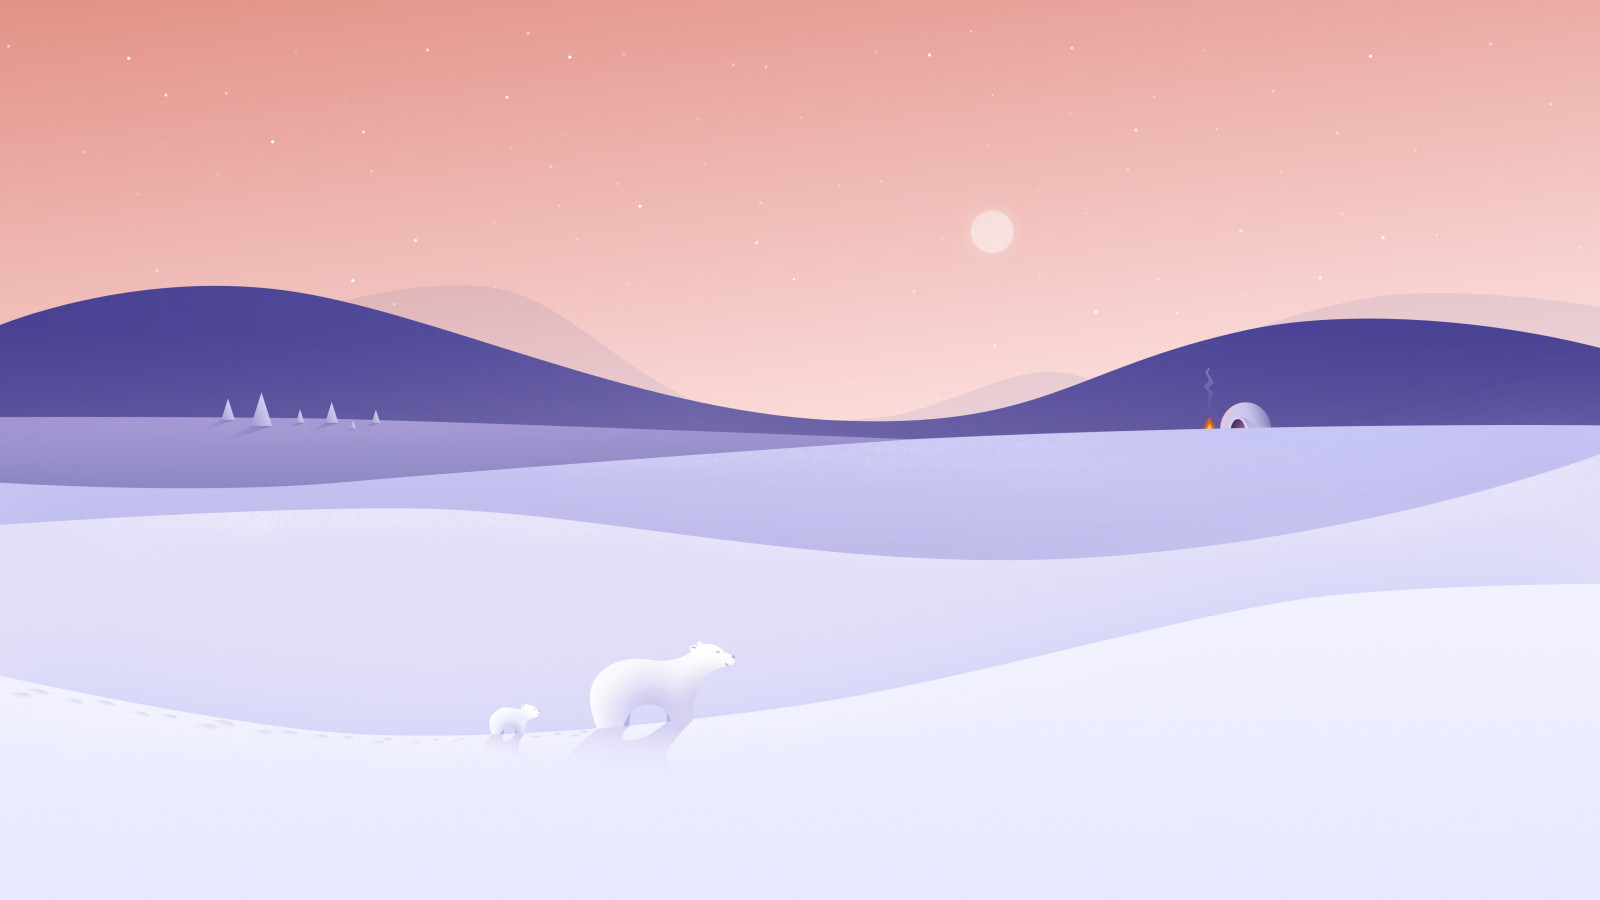 Polar bears illustration wallpaper 1600x900